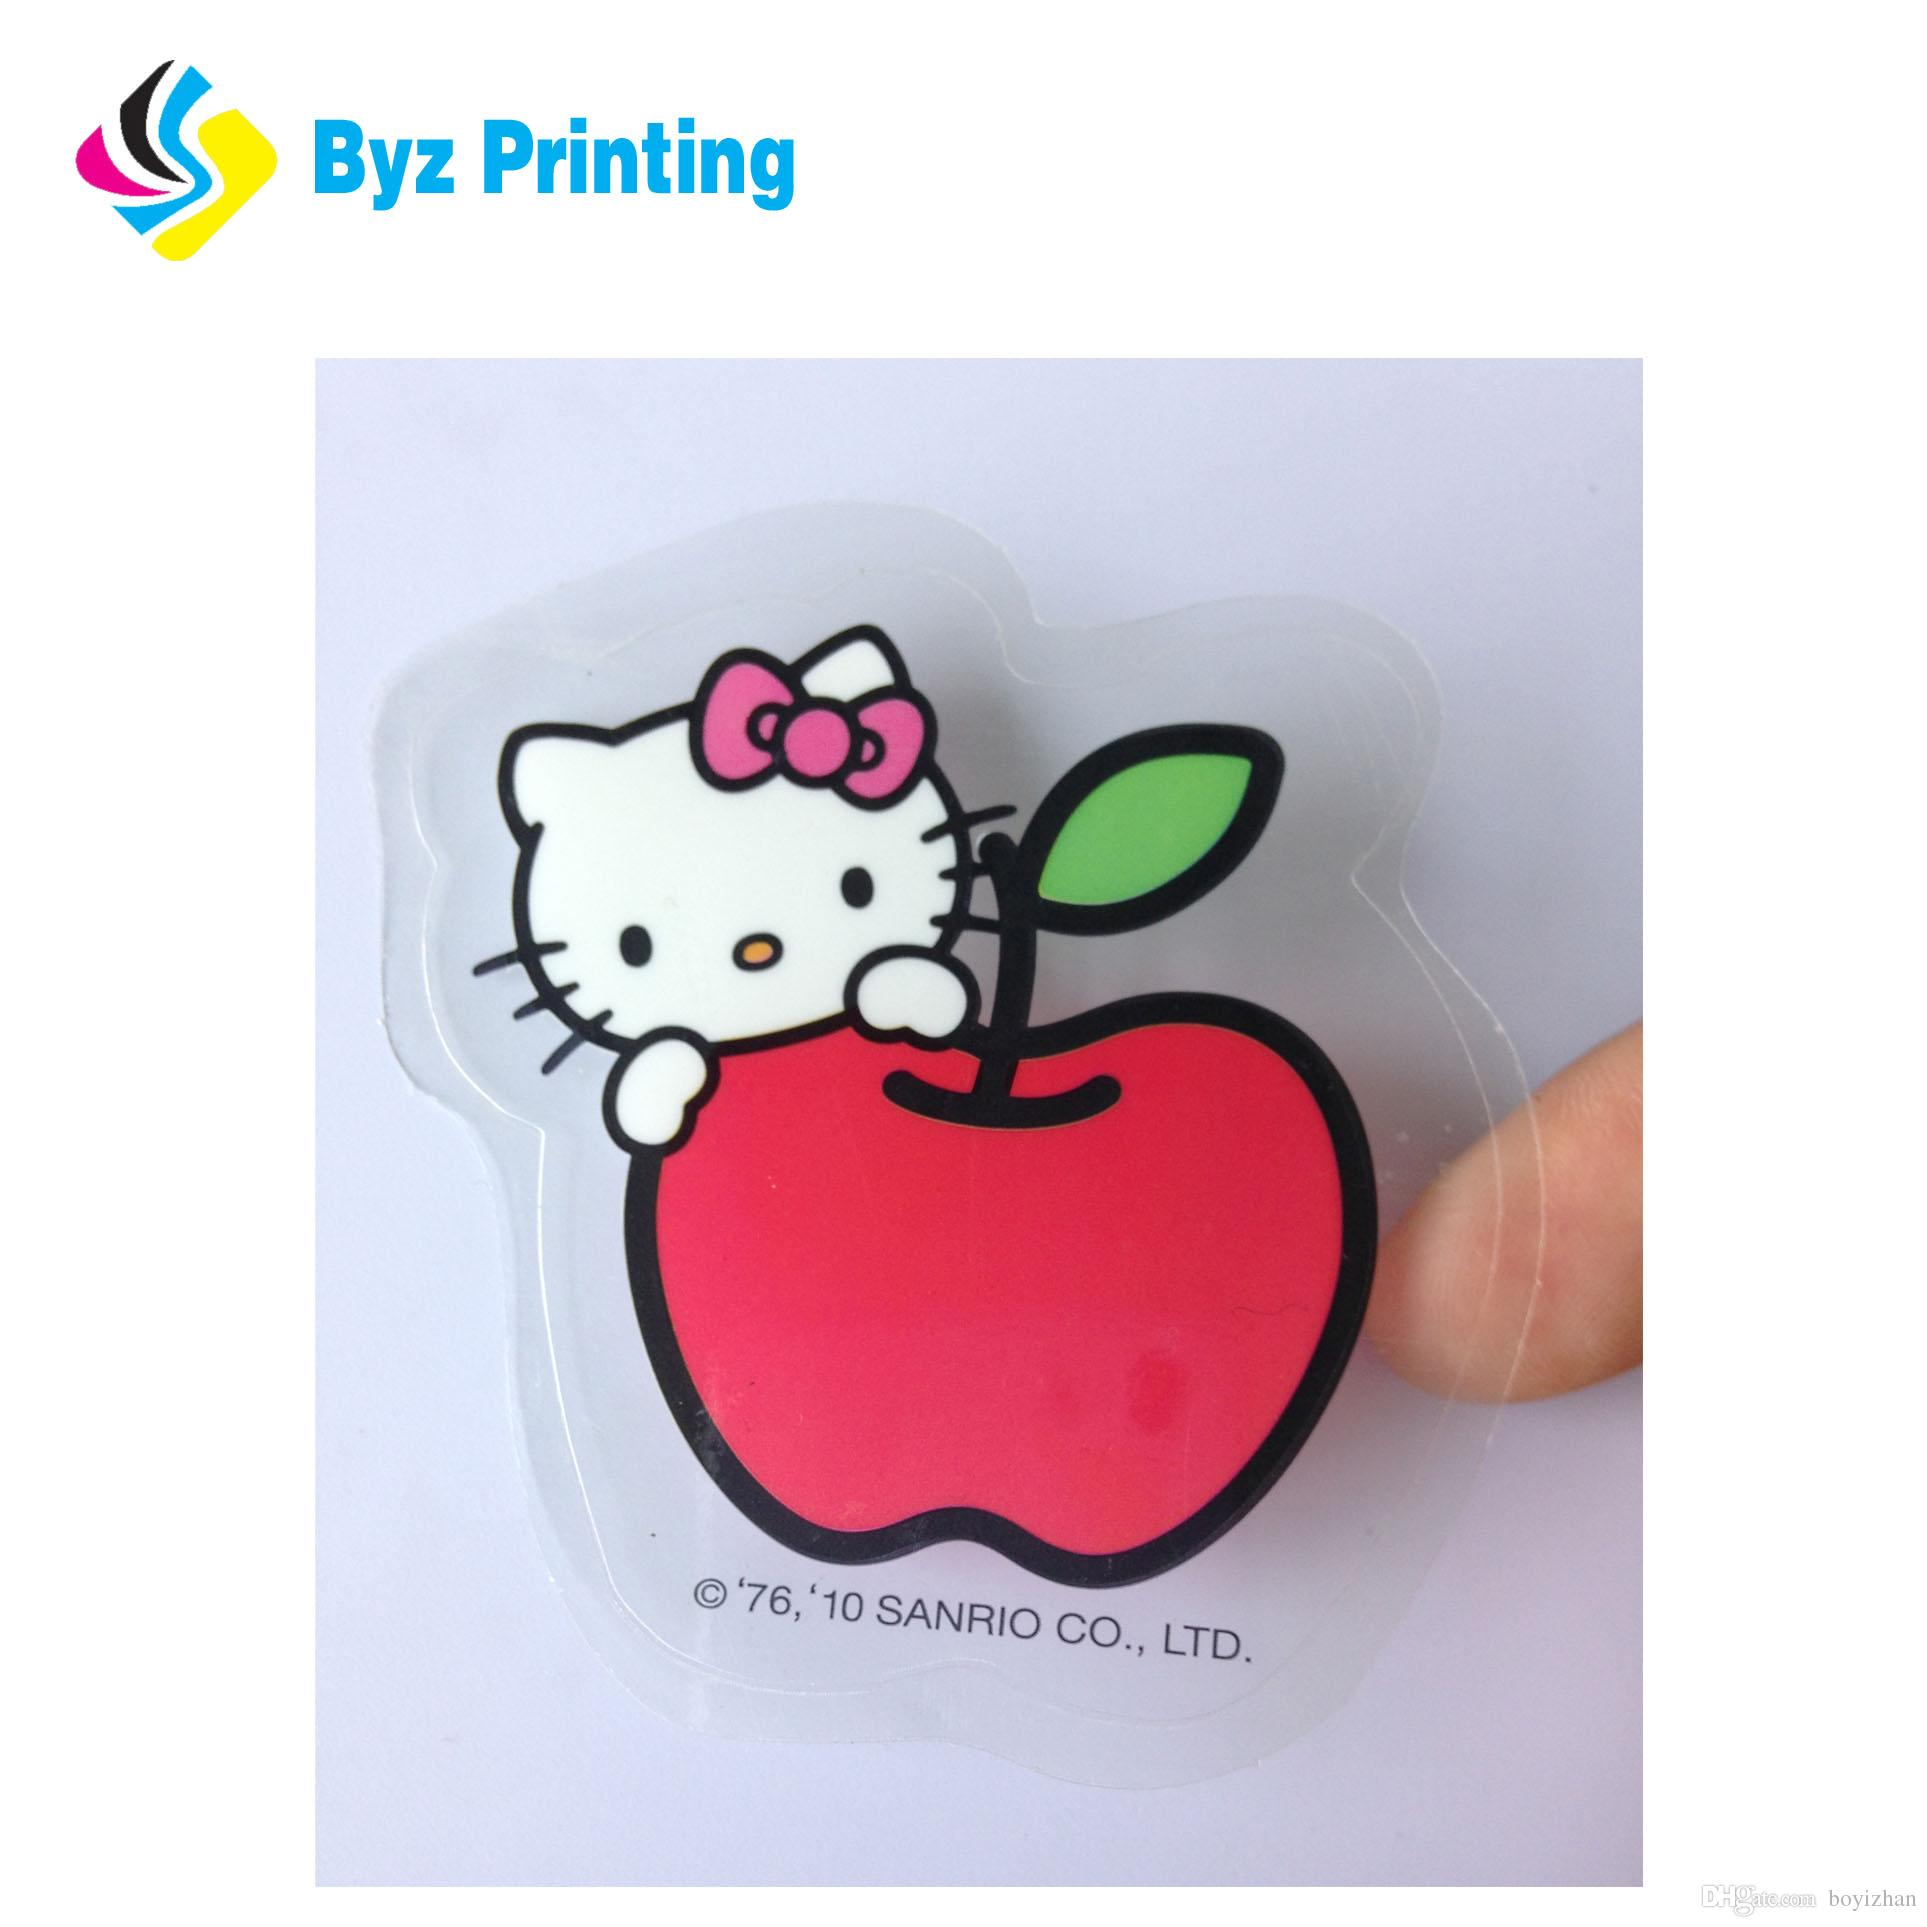 Custom clear stickers eco friendly transparent self adhesive printing sticker labels sheet package die cut